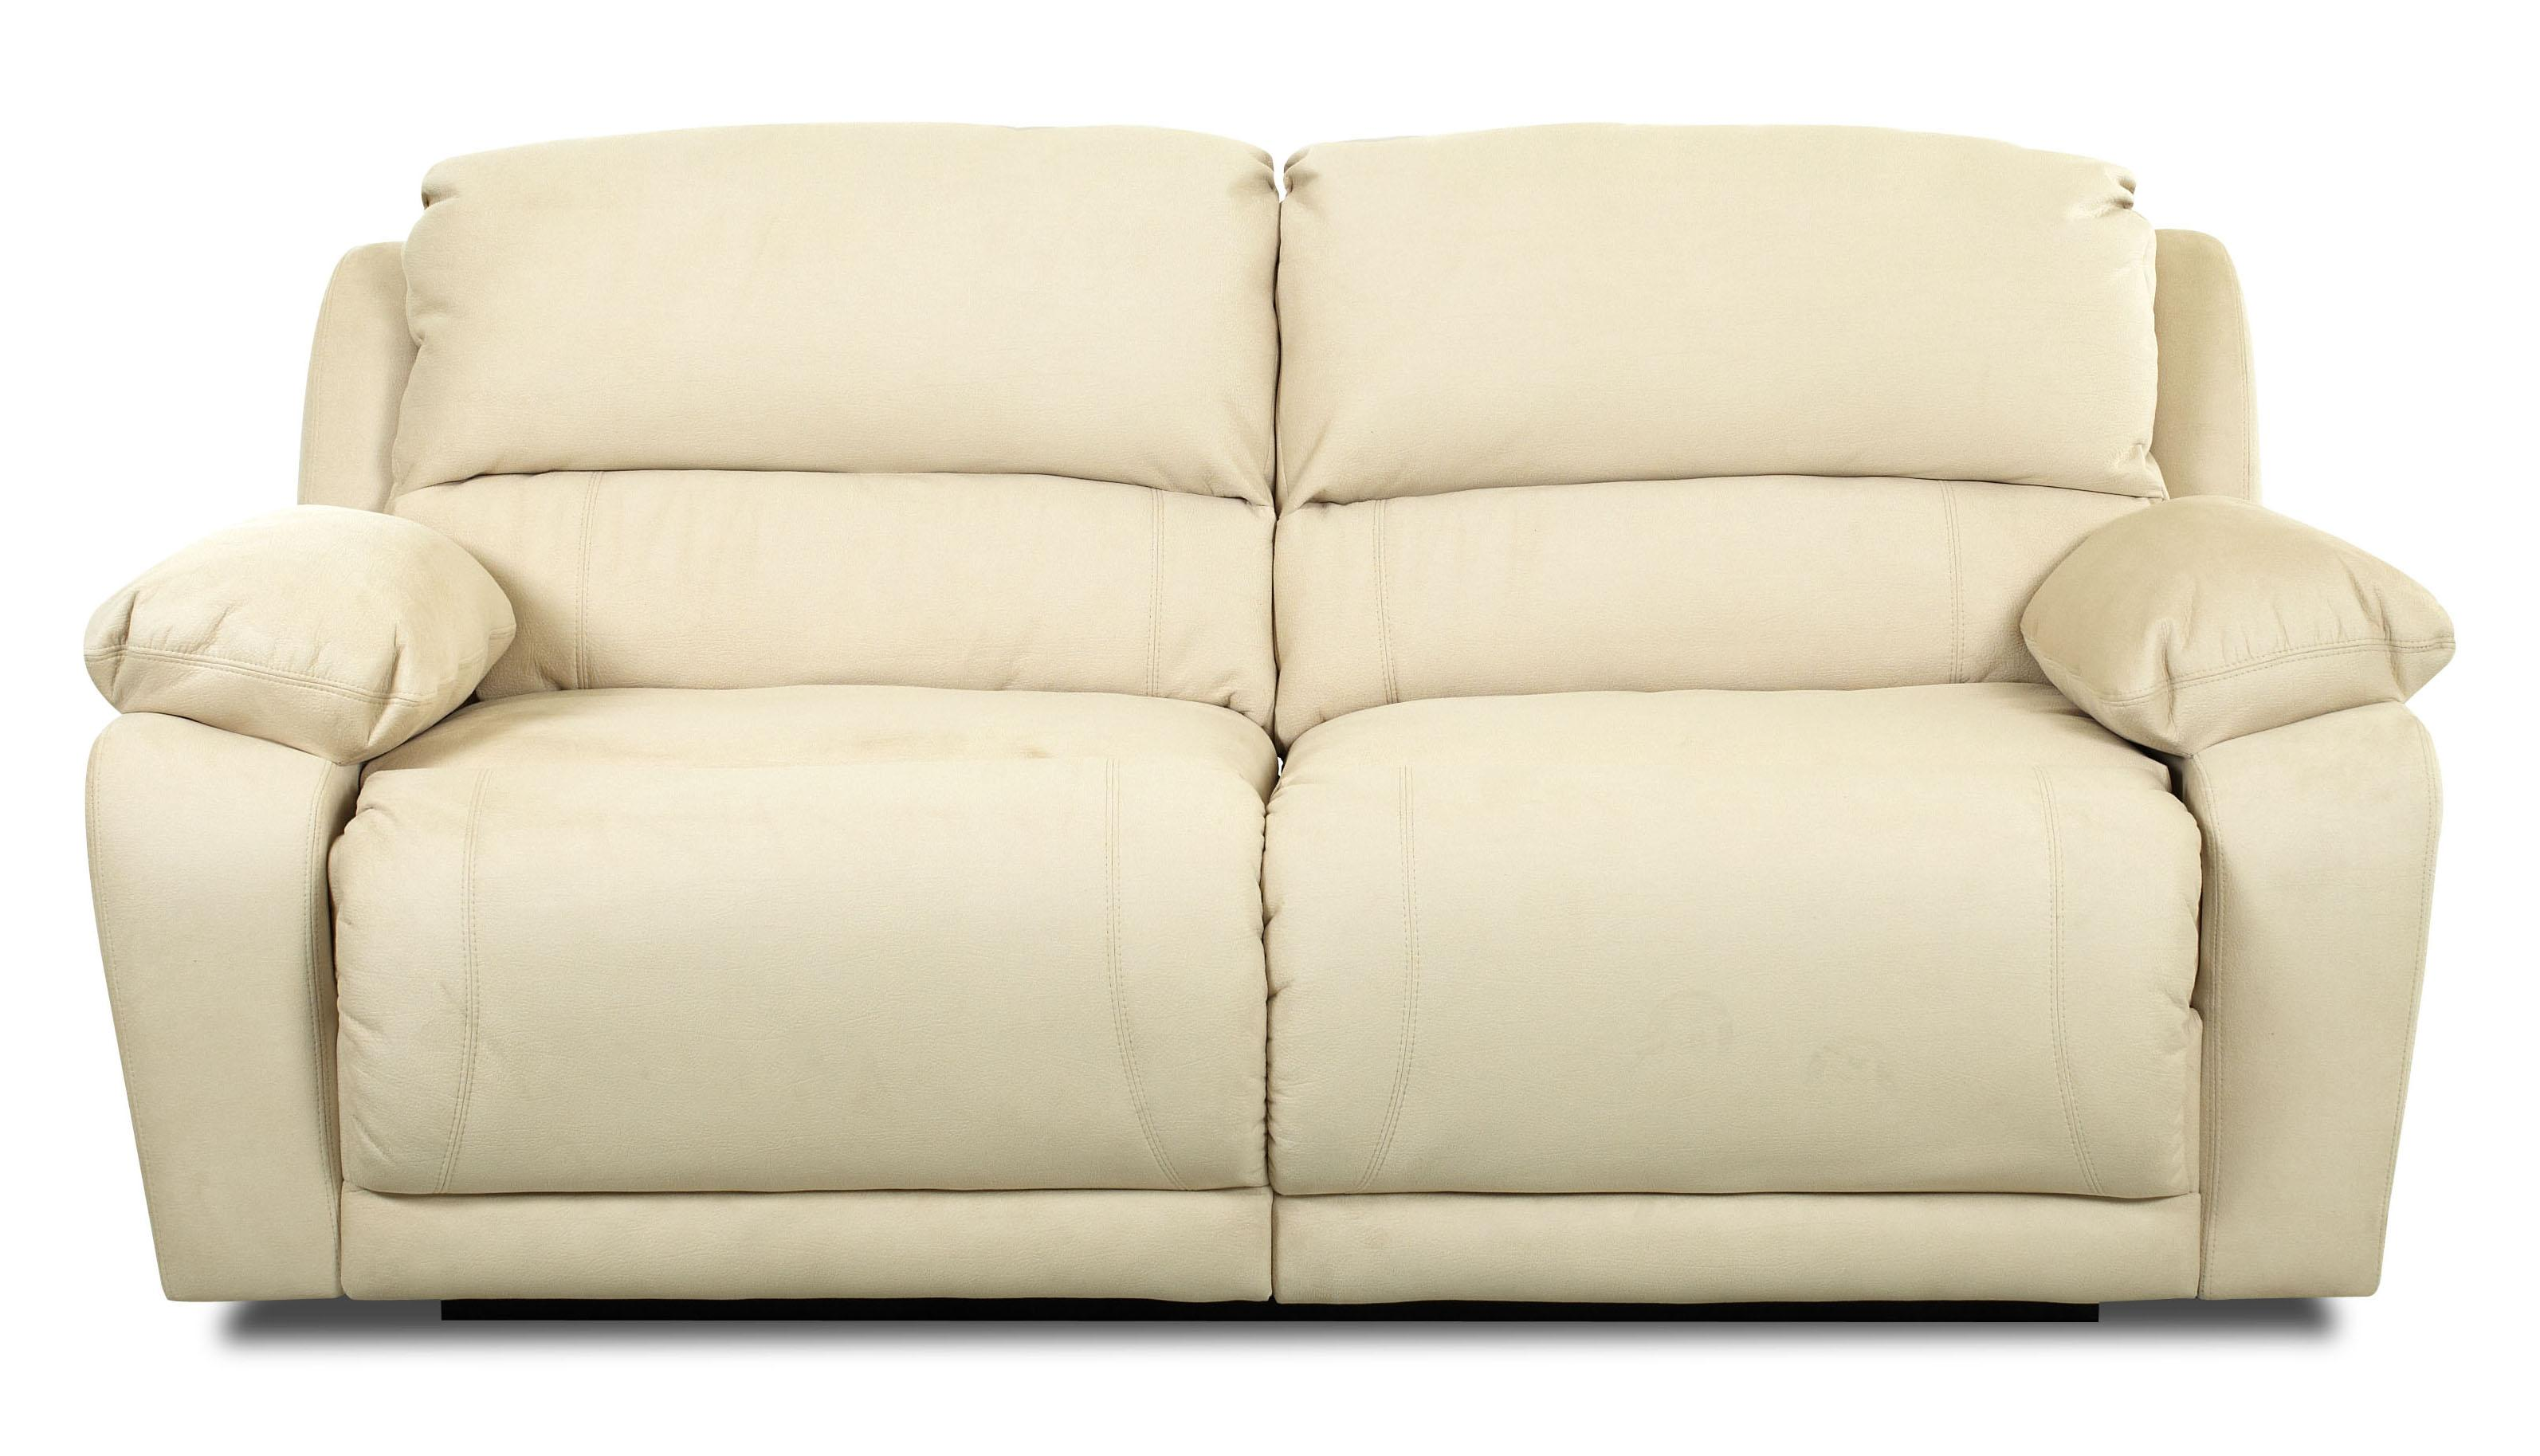 klaussner grand power reclining sofa cheap packages uk double by wolf and